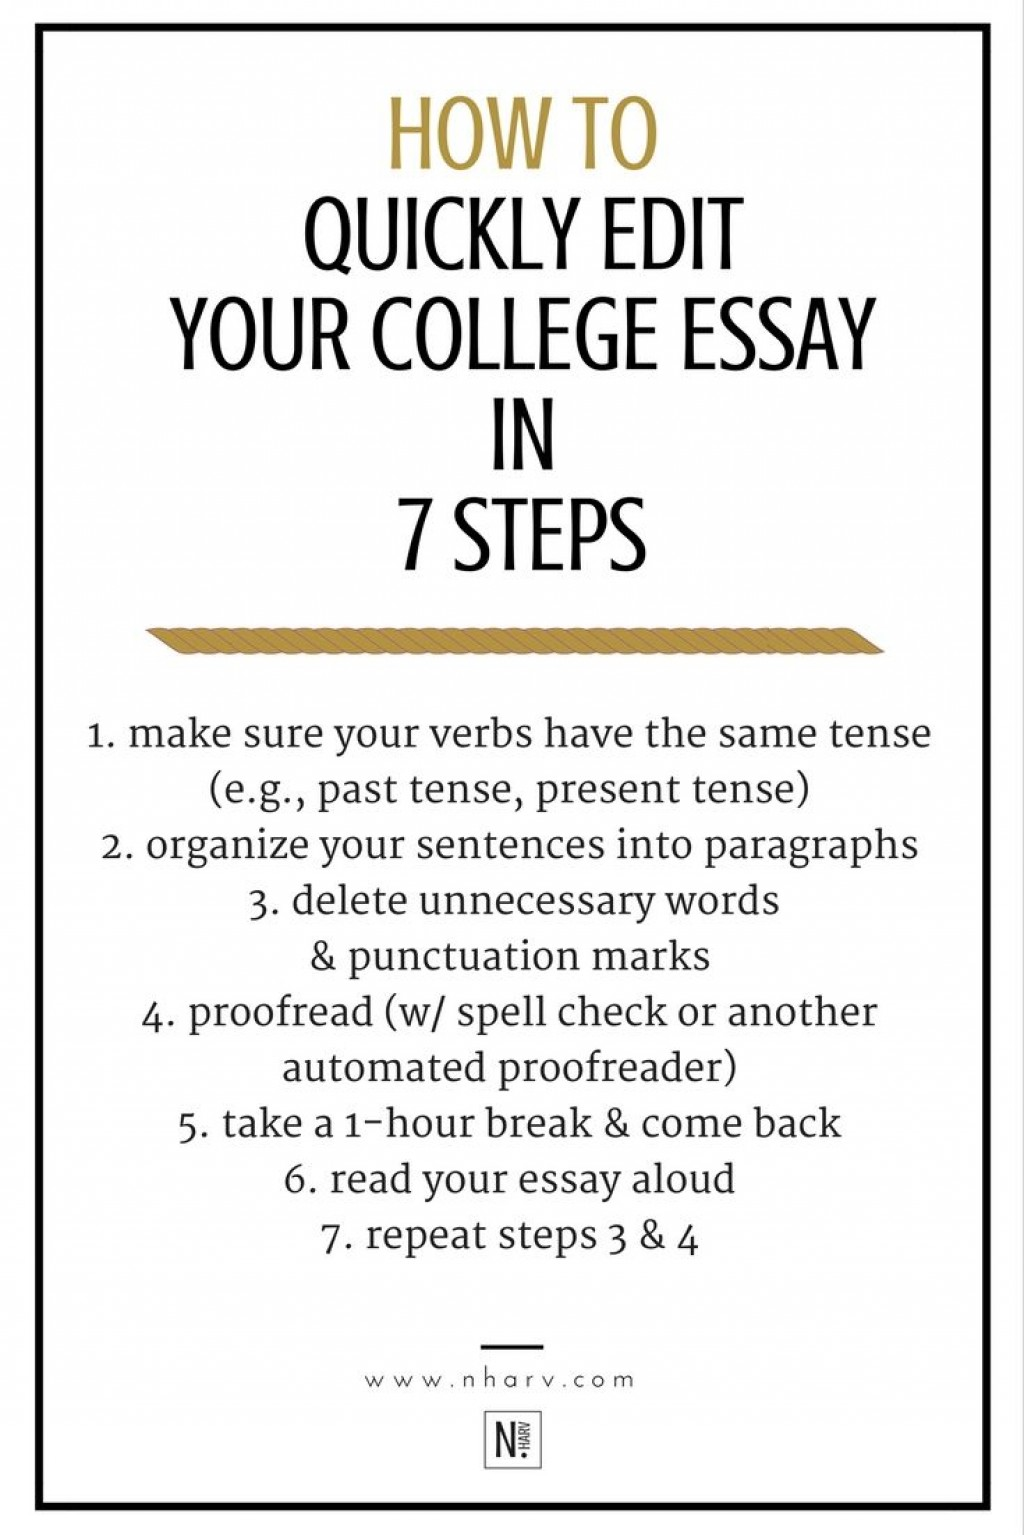 008 Essay Example College Editing Amazing Services Online Jobs Checklist Large